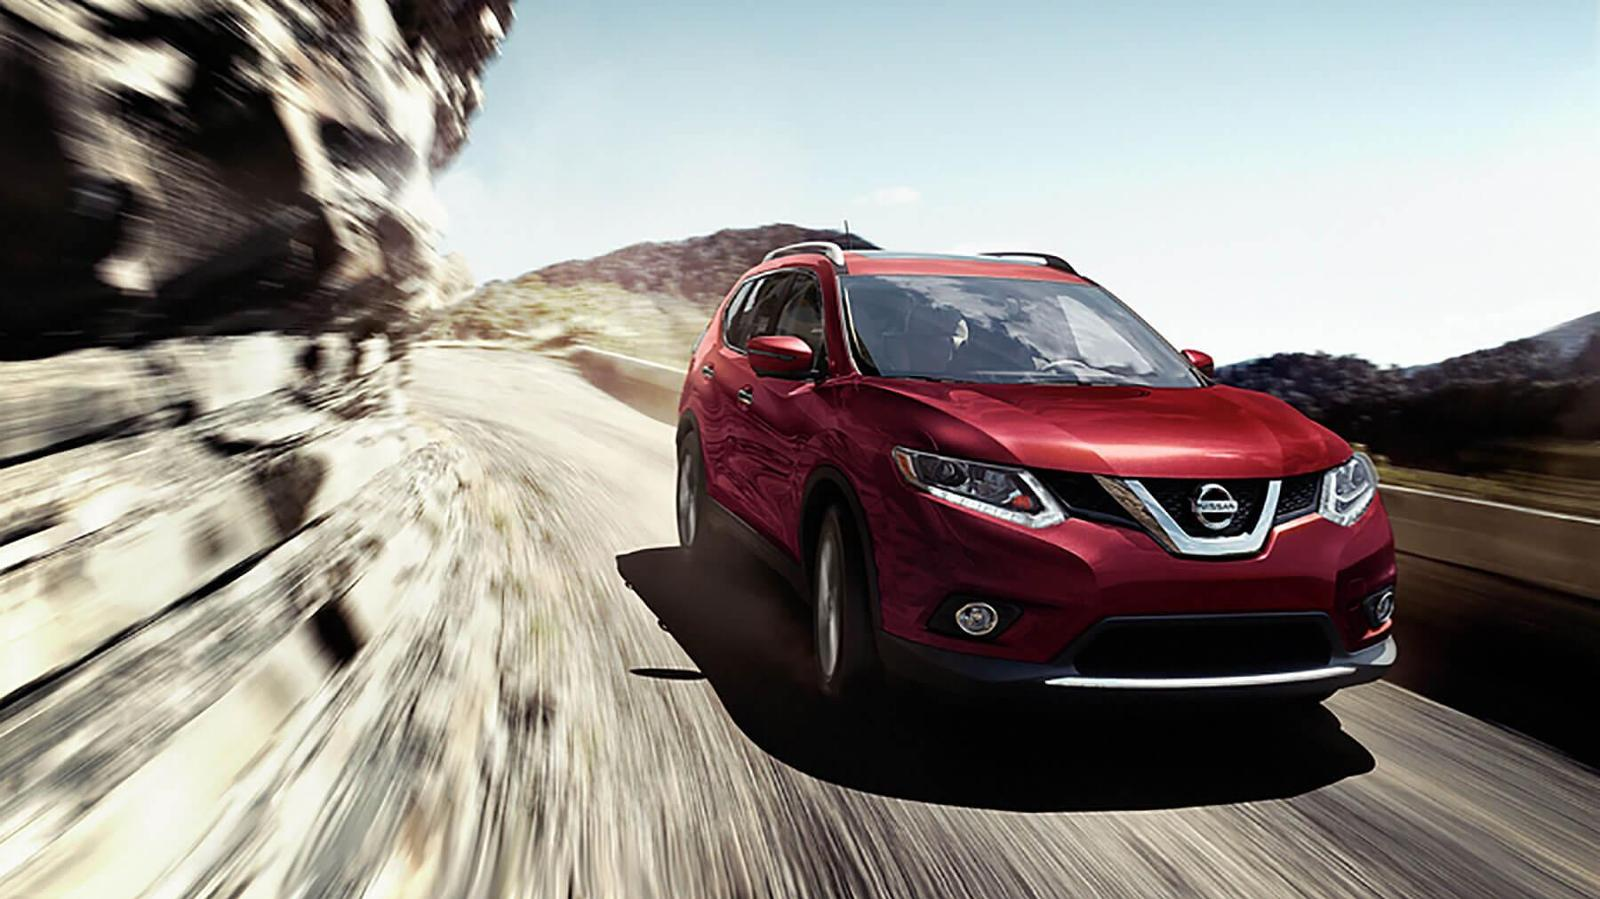 Red Nissan Rouge Driving down a mountainous road